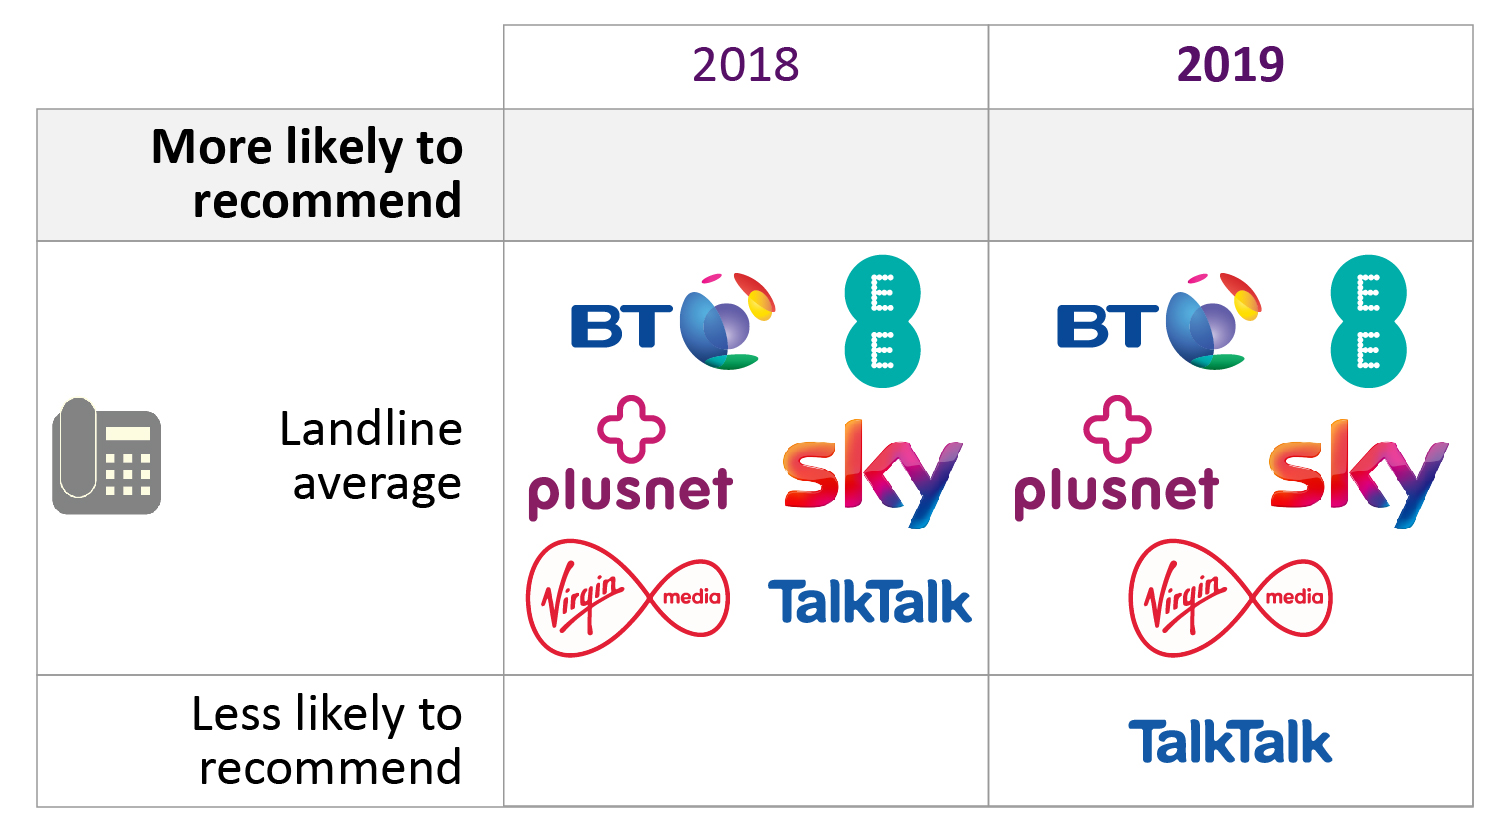 There are no providers that customers are more likely to recommend, but they are less likely to recommend TalkTalk.